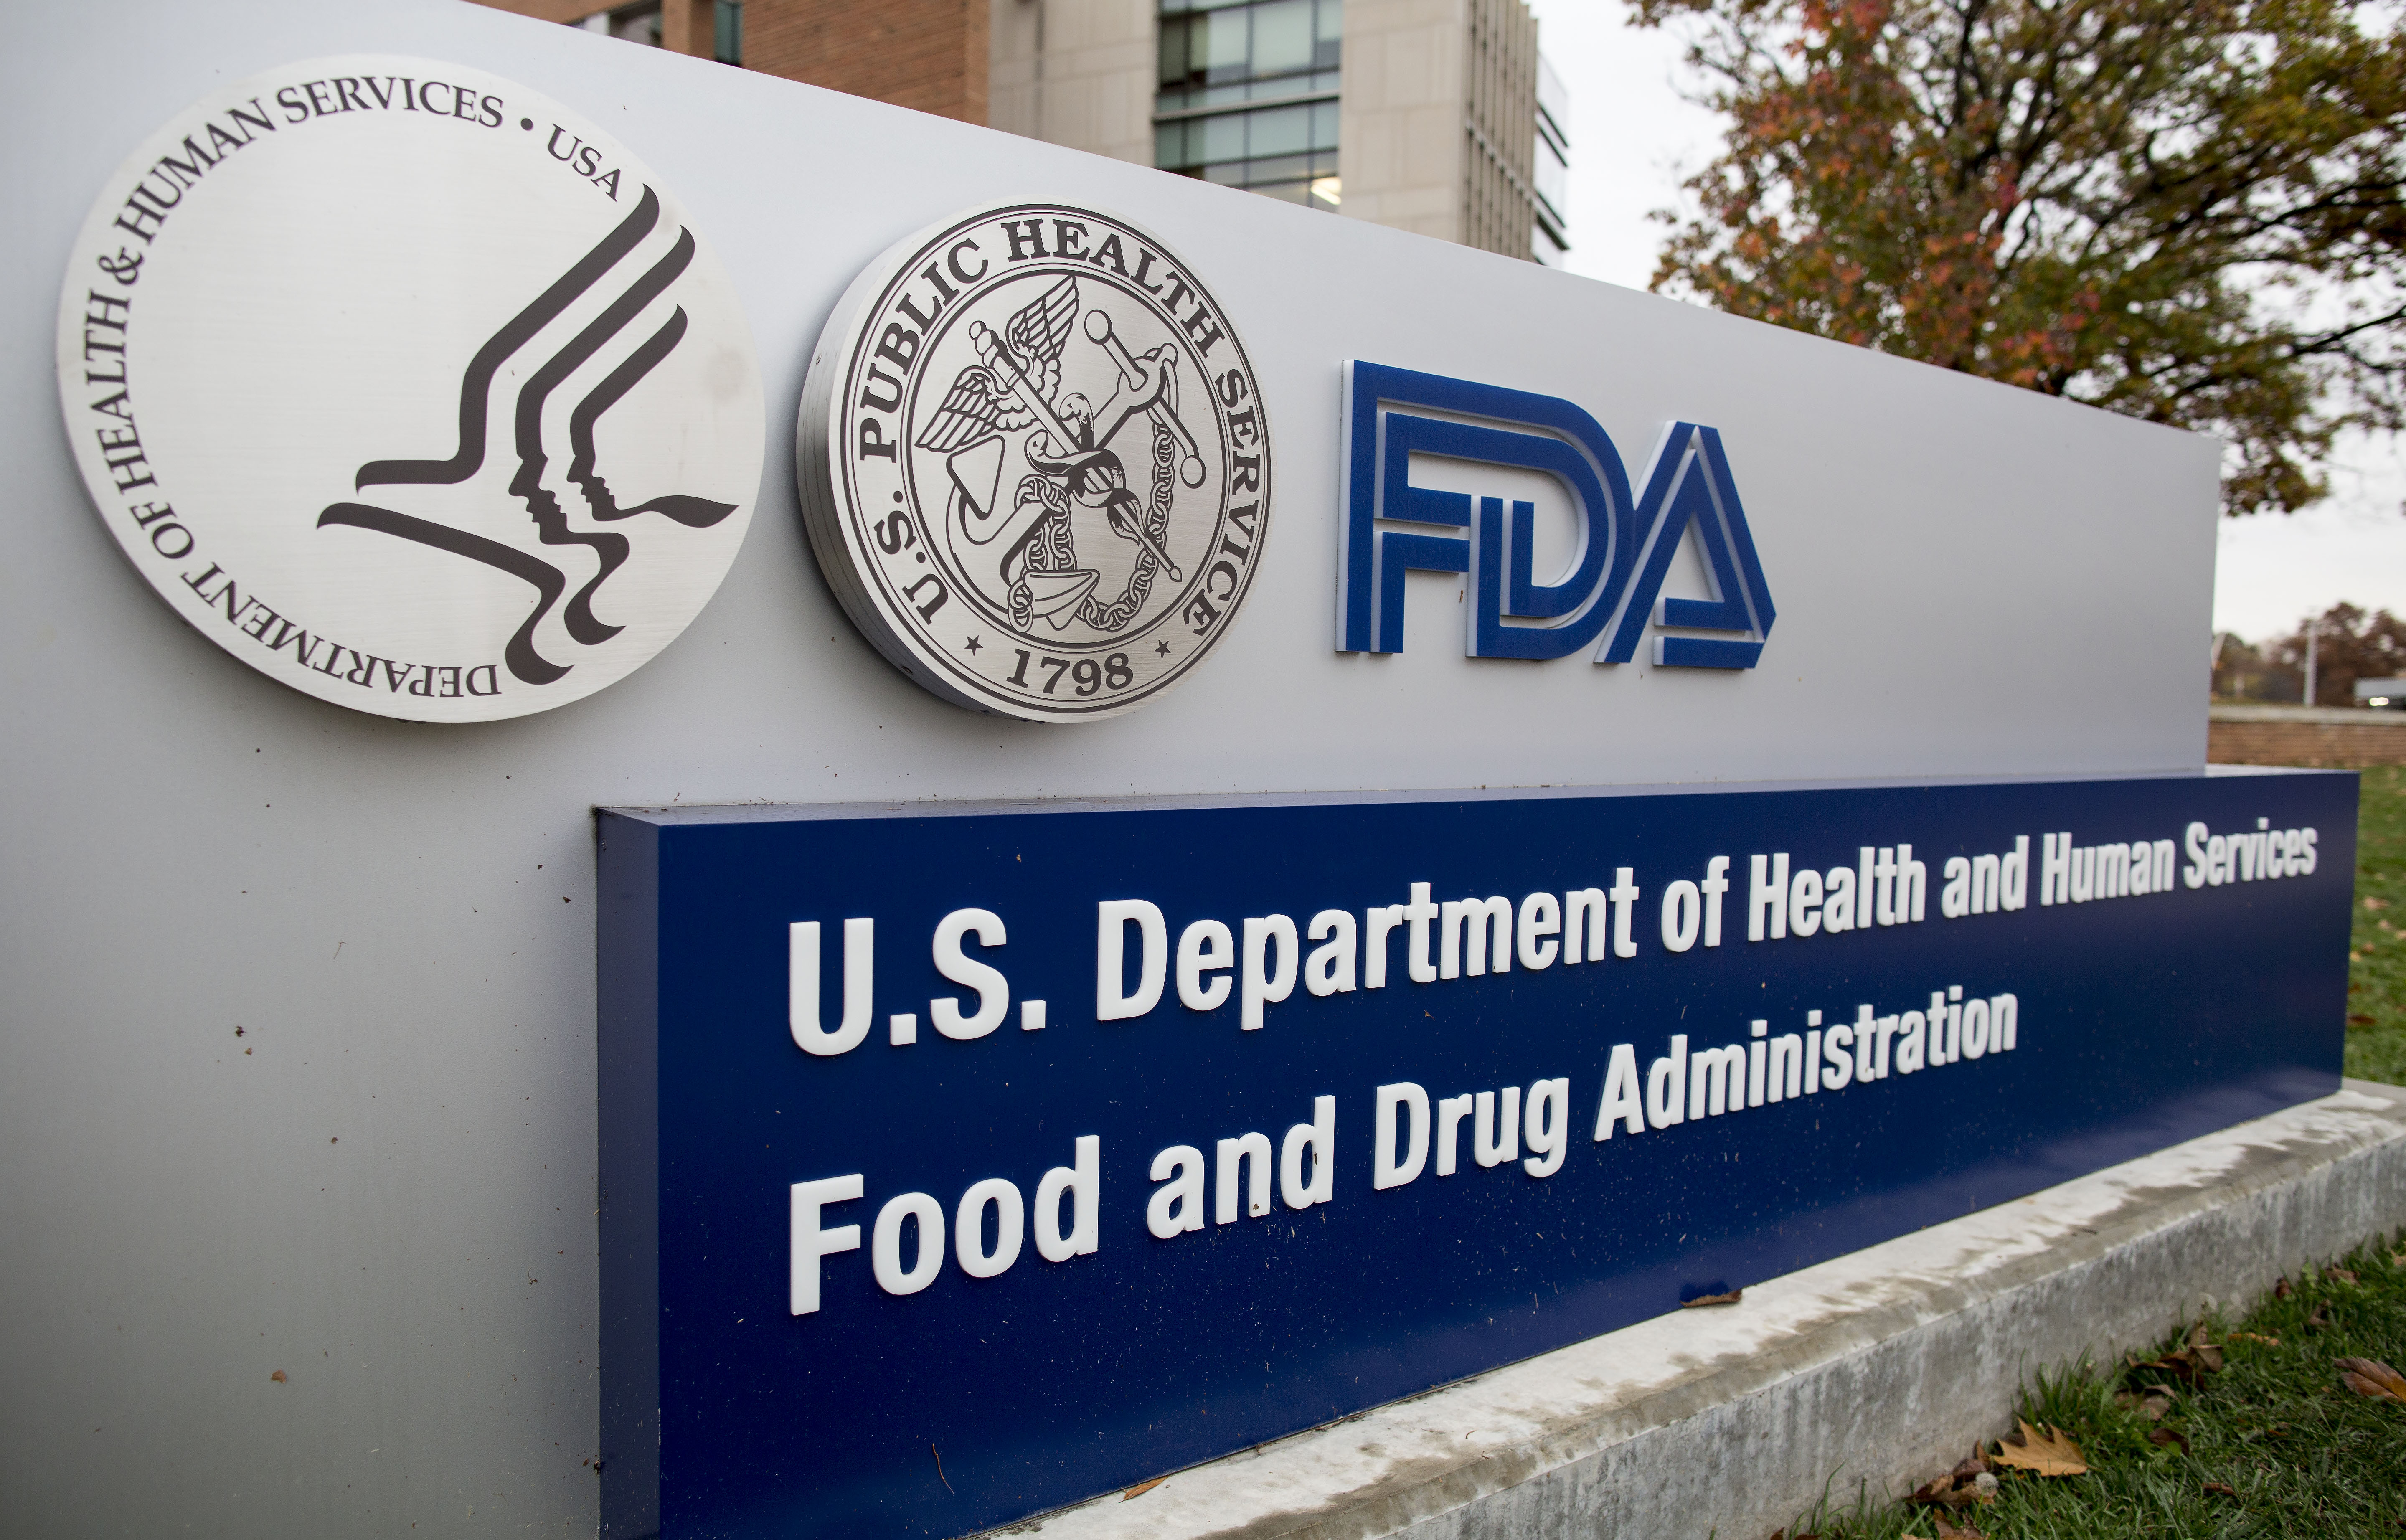 The Food and Drug Administration